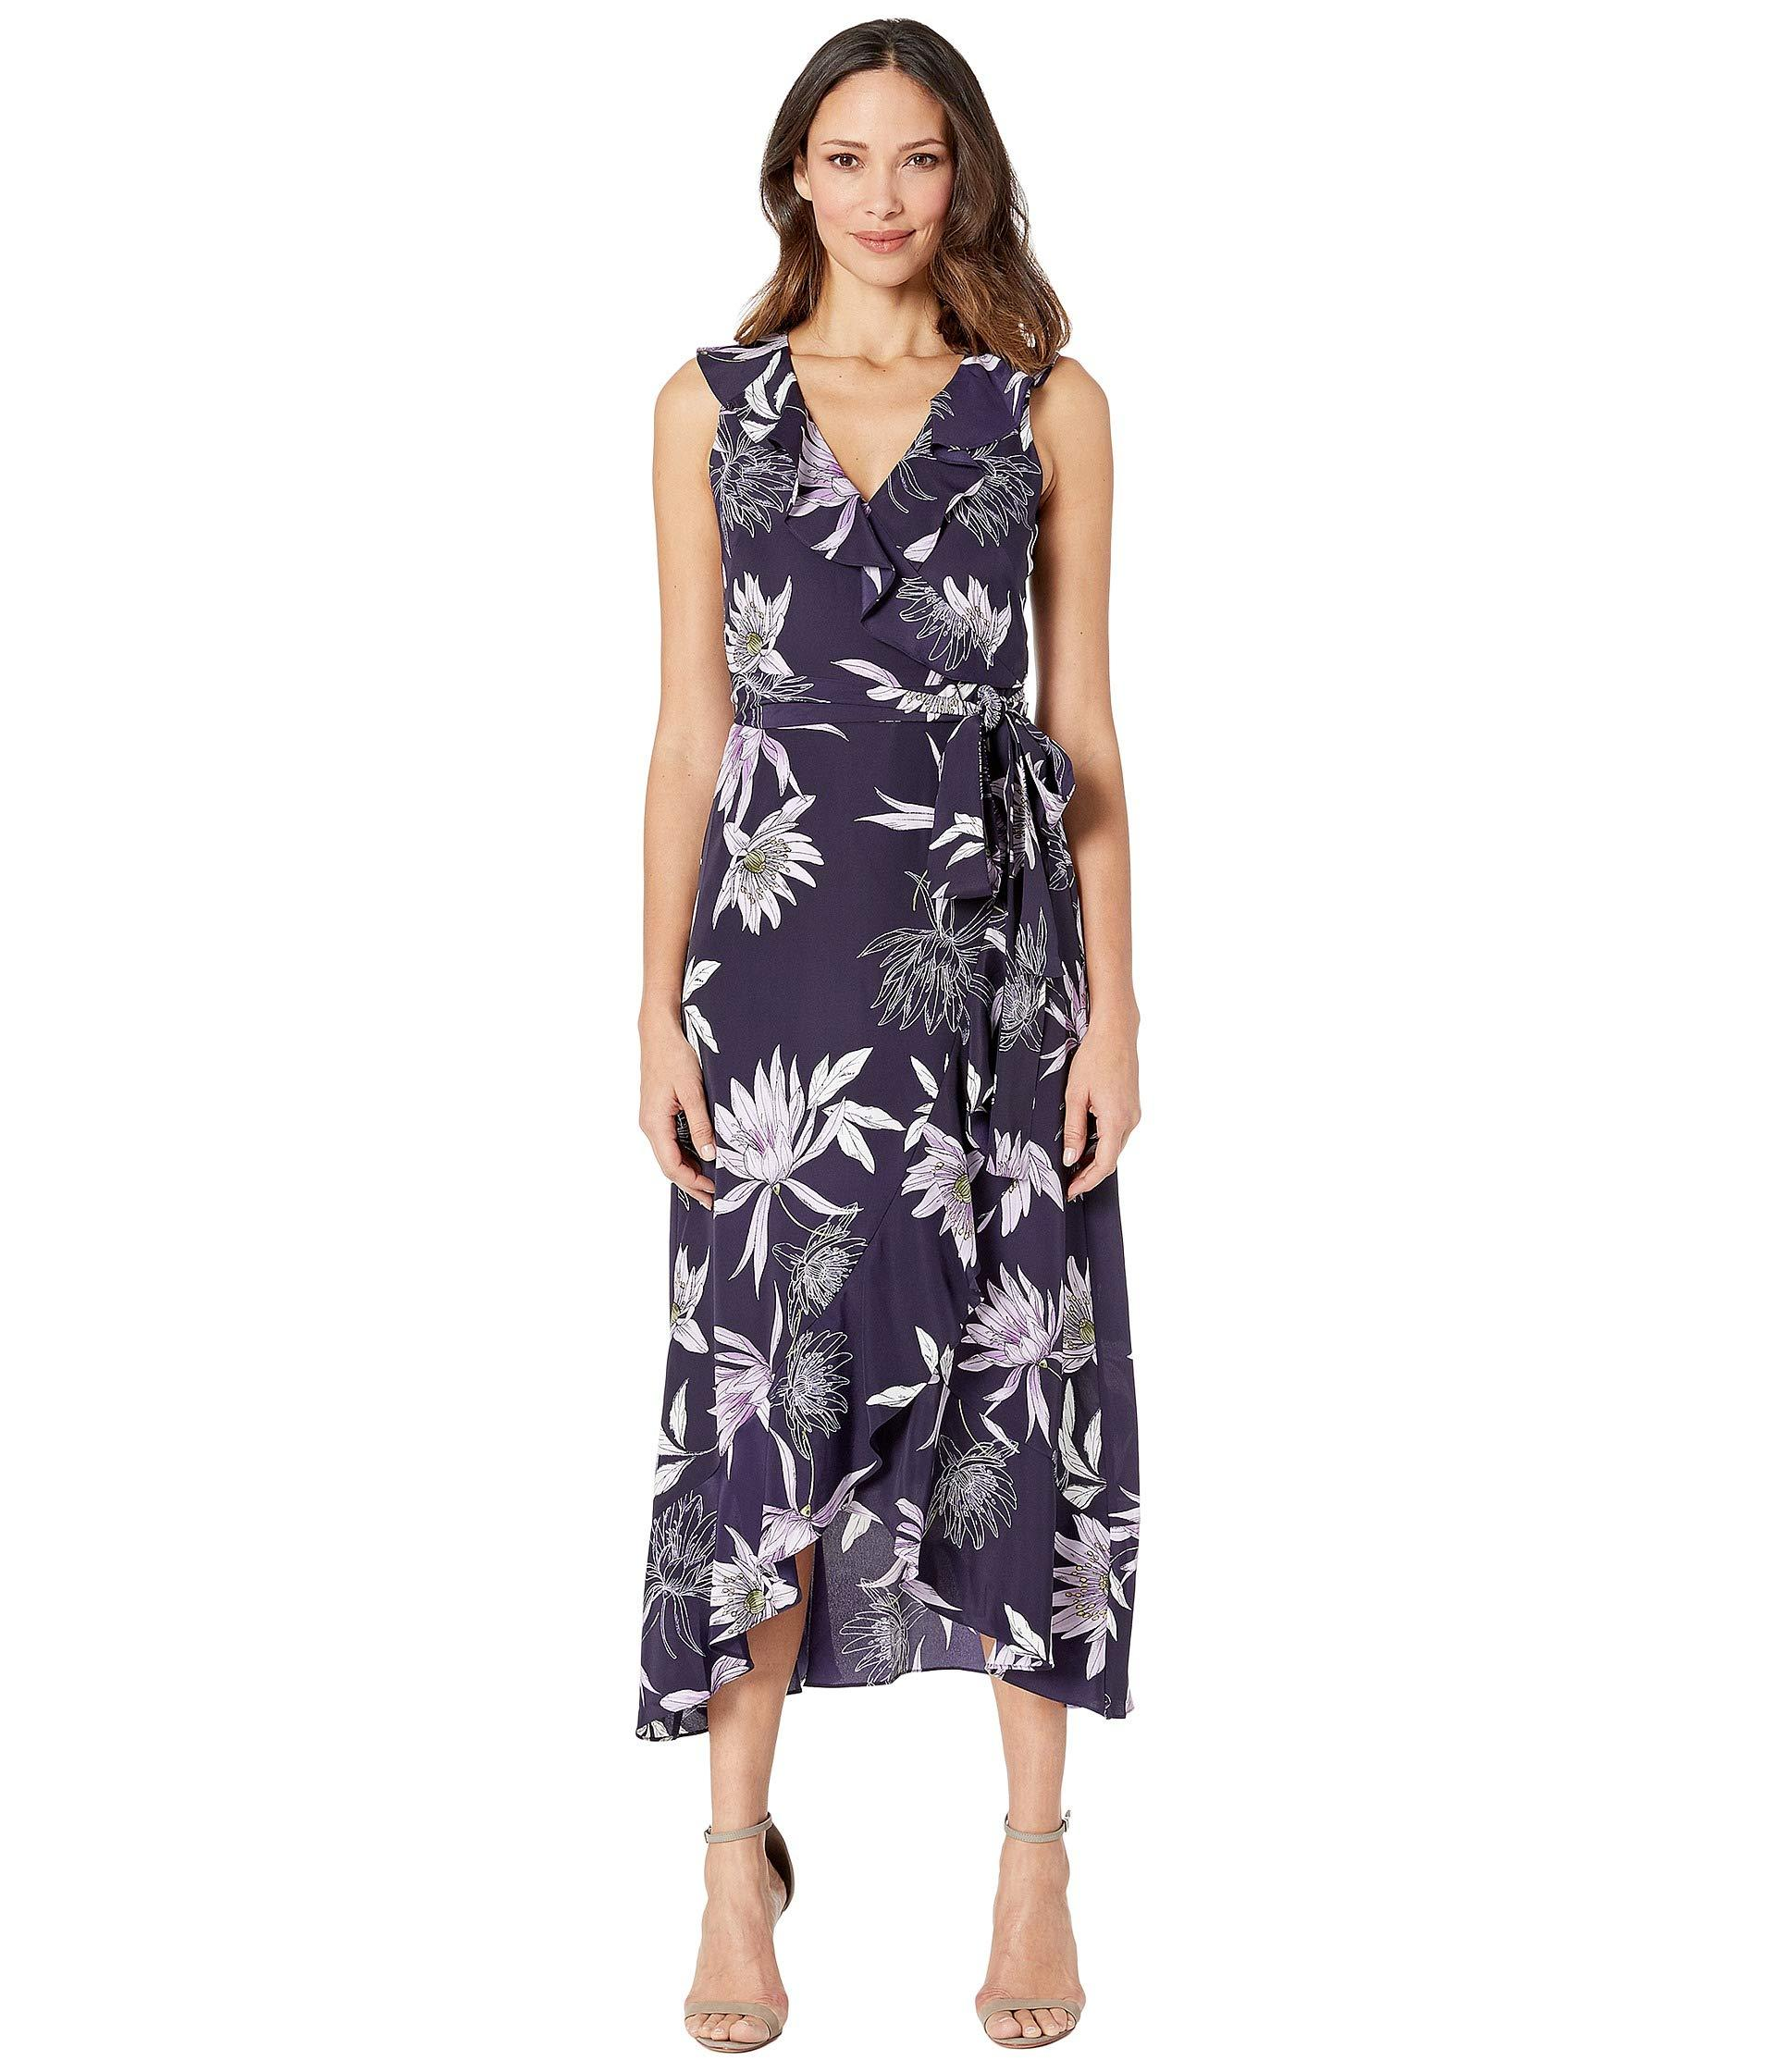 a0b51cc9 Lyst - Vince Camuto Printed Cdc V-neck Faux Wrap Dress (navy Multi ...